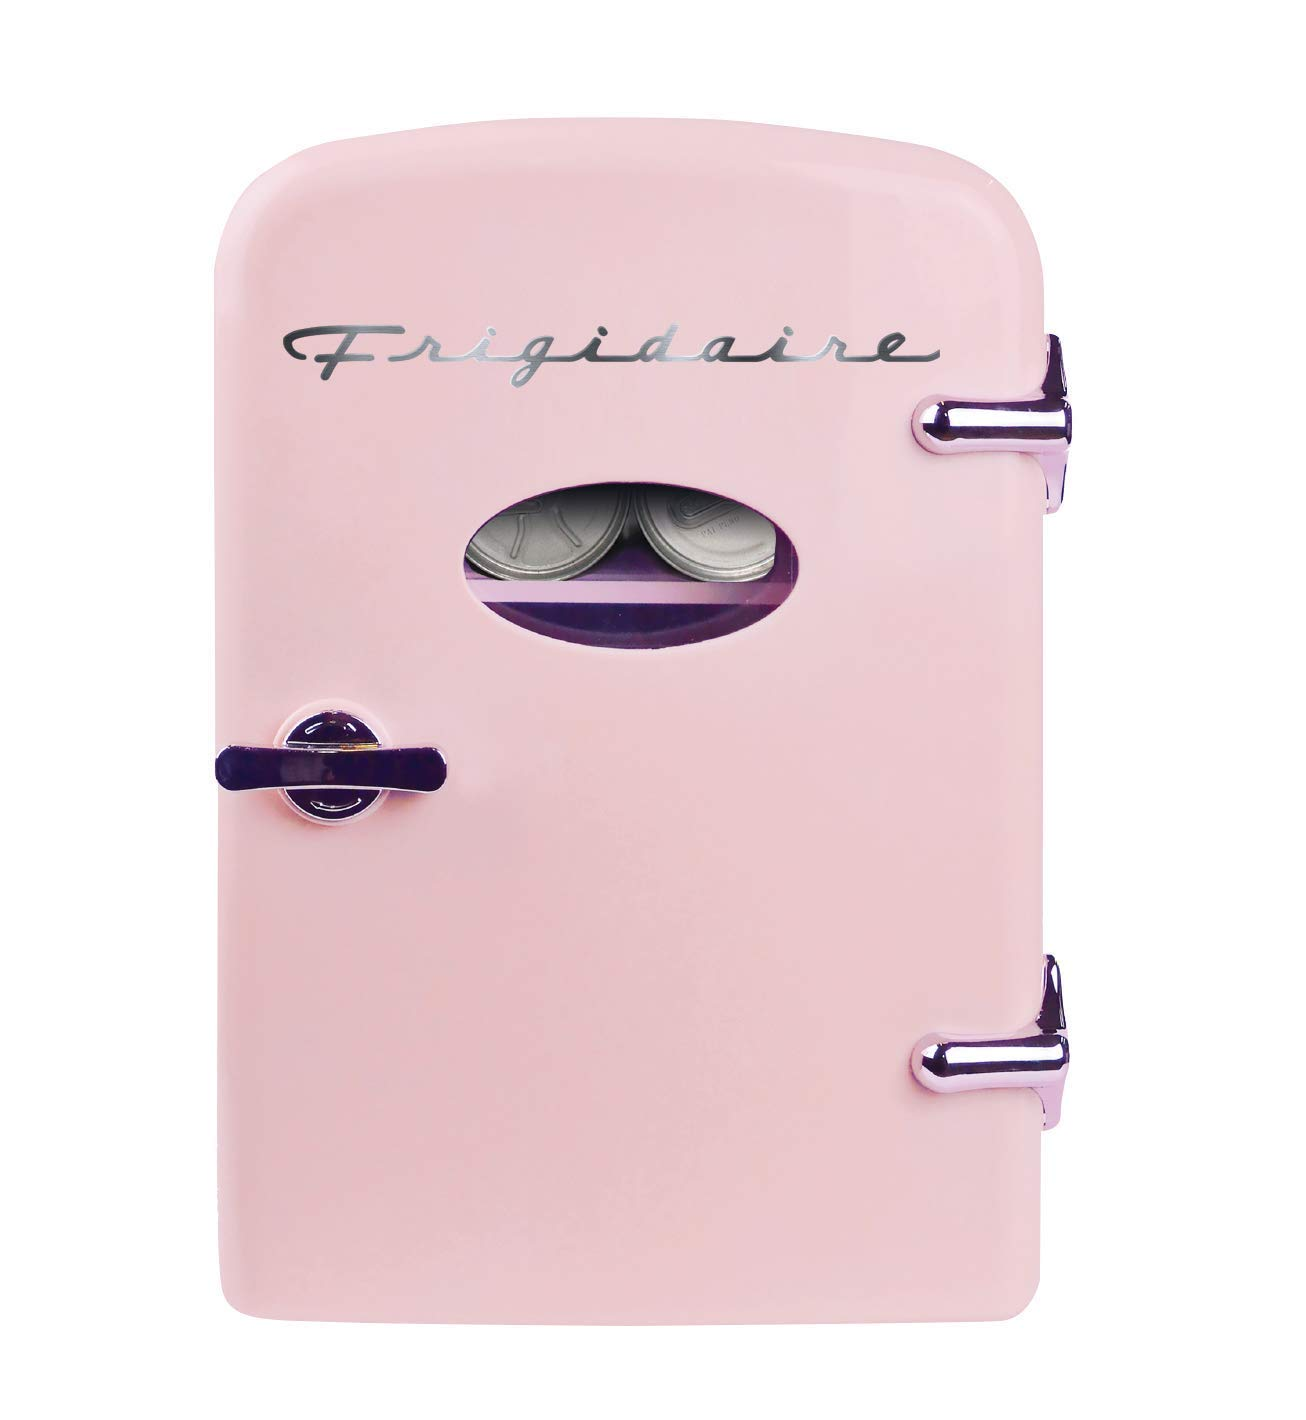 Frigidaire Retro Mini Compact Beverage Refrigerator, Great for keeping office lunch cool! (Pink, 6 Can) (Renewed)